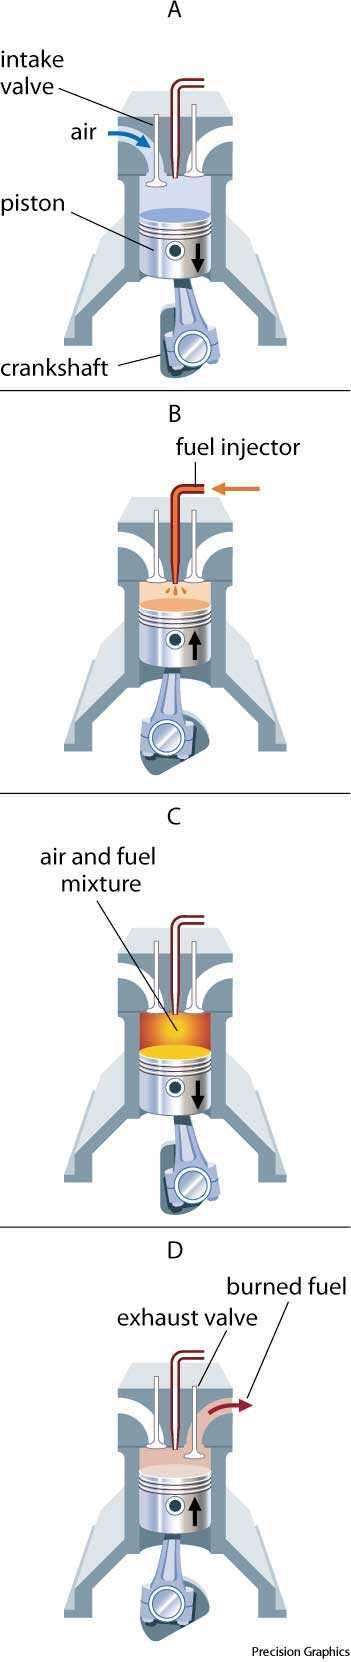 internal-combustion engine